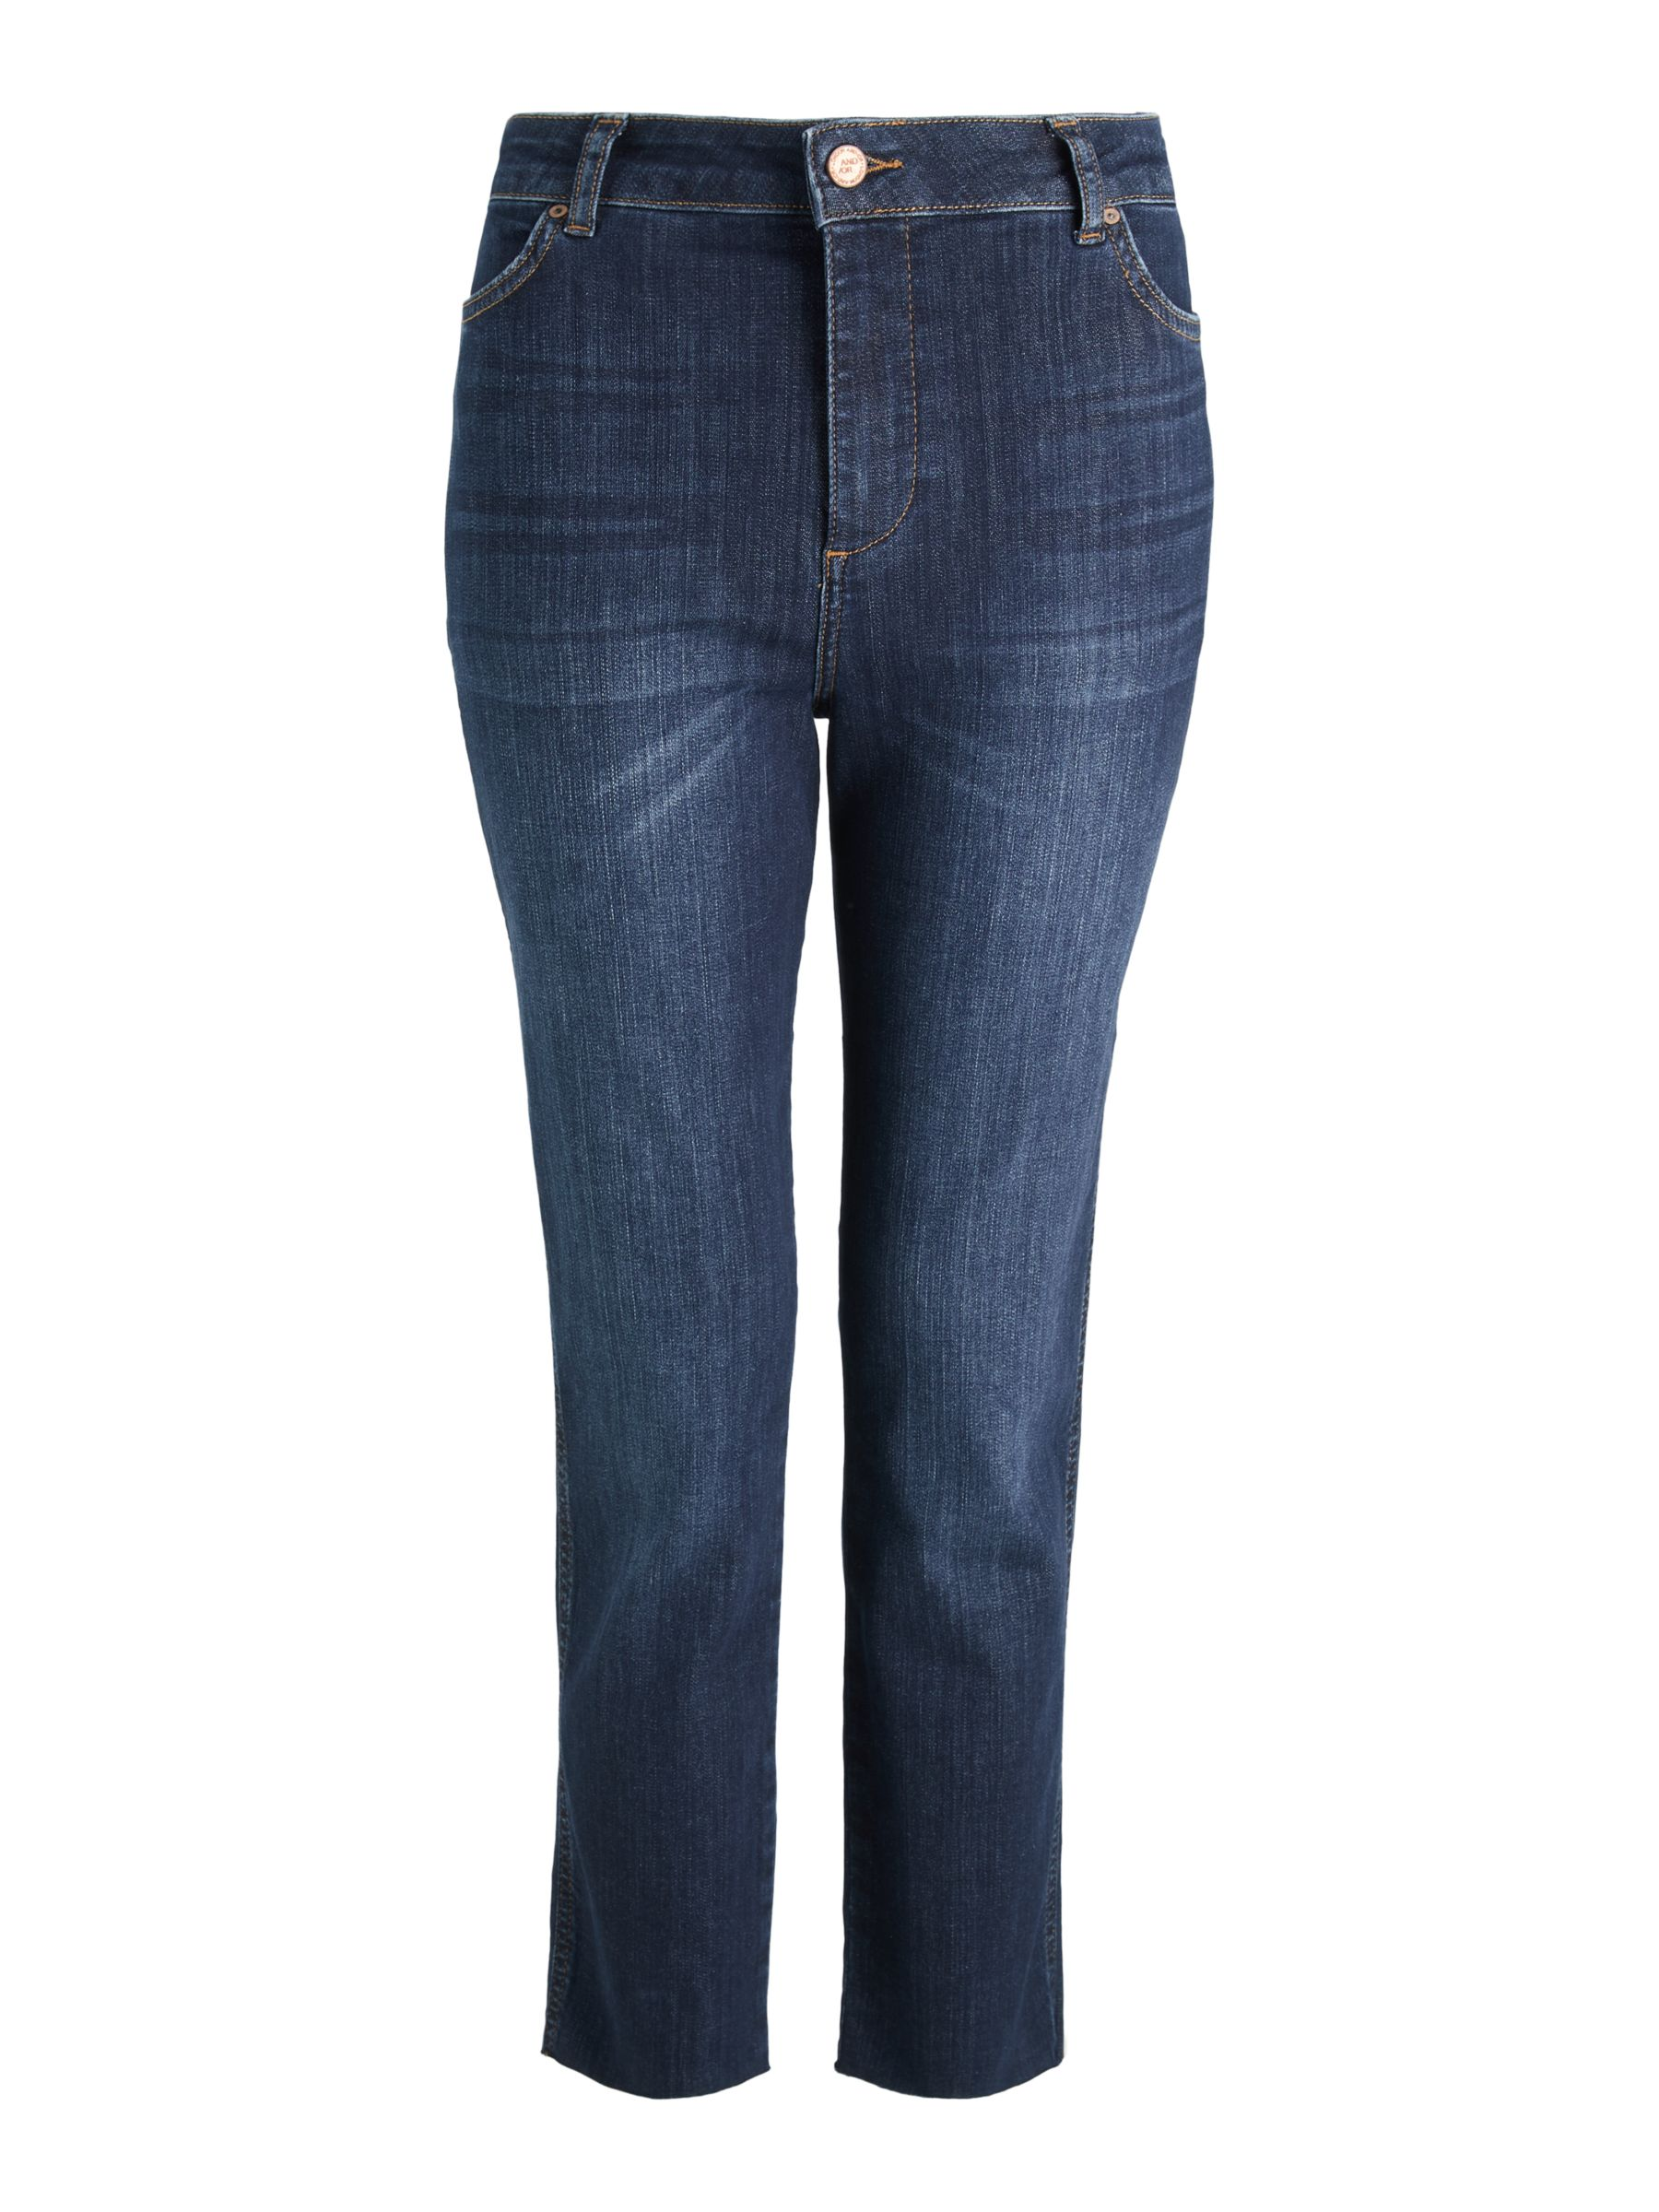 Buy AND/OR Sierra High Rise Straight Jeans, Azurite, 26 Online at johnlewis.com